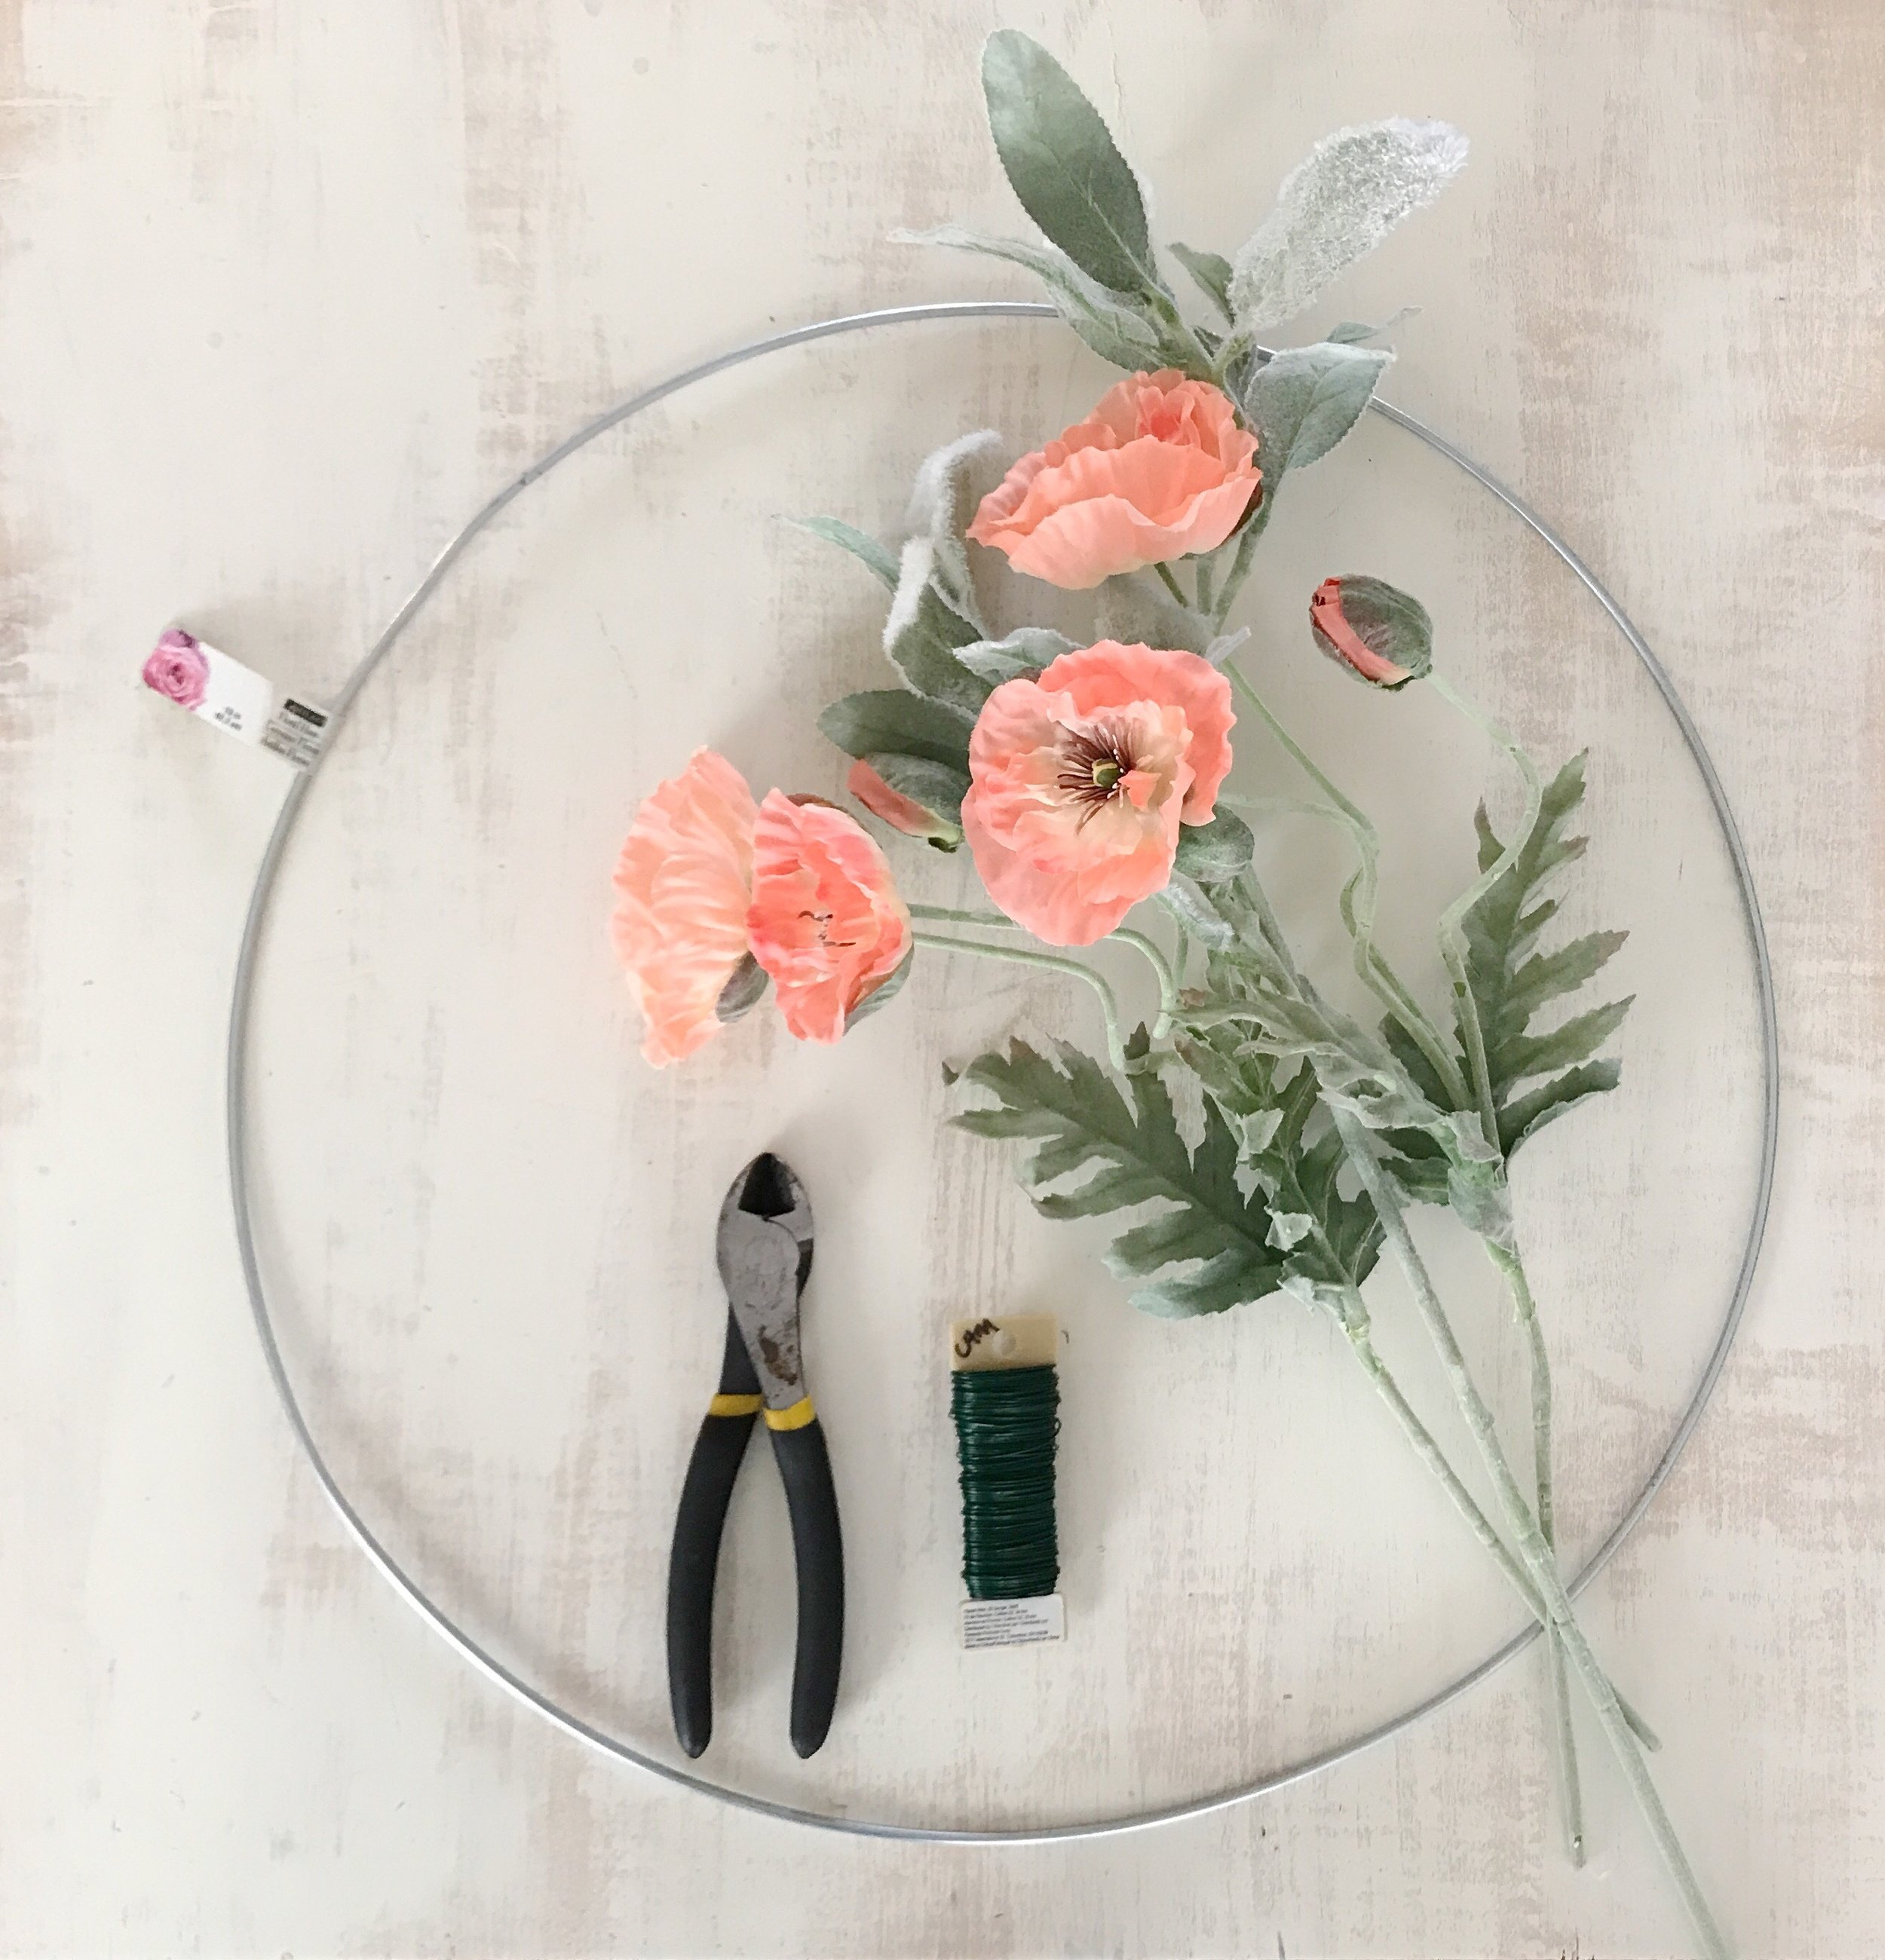 Supplies: - floral hoop, flowers, floral wire, wire cutters